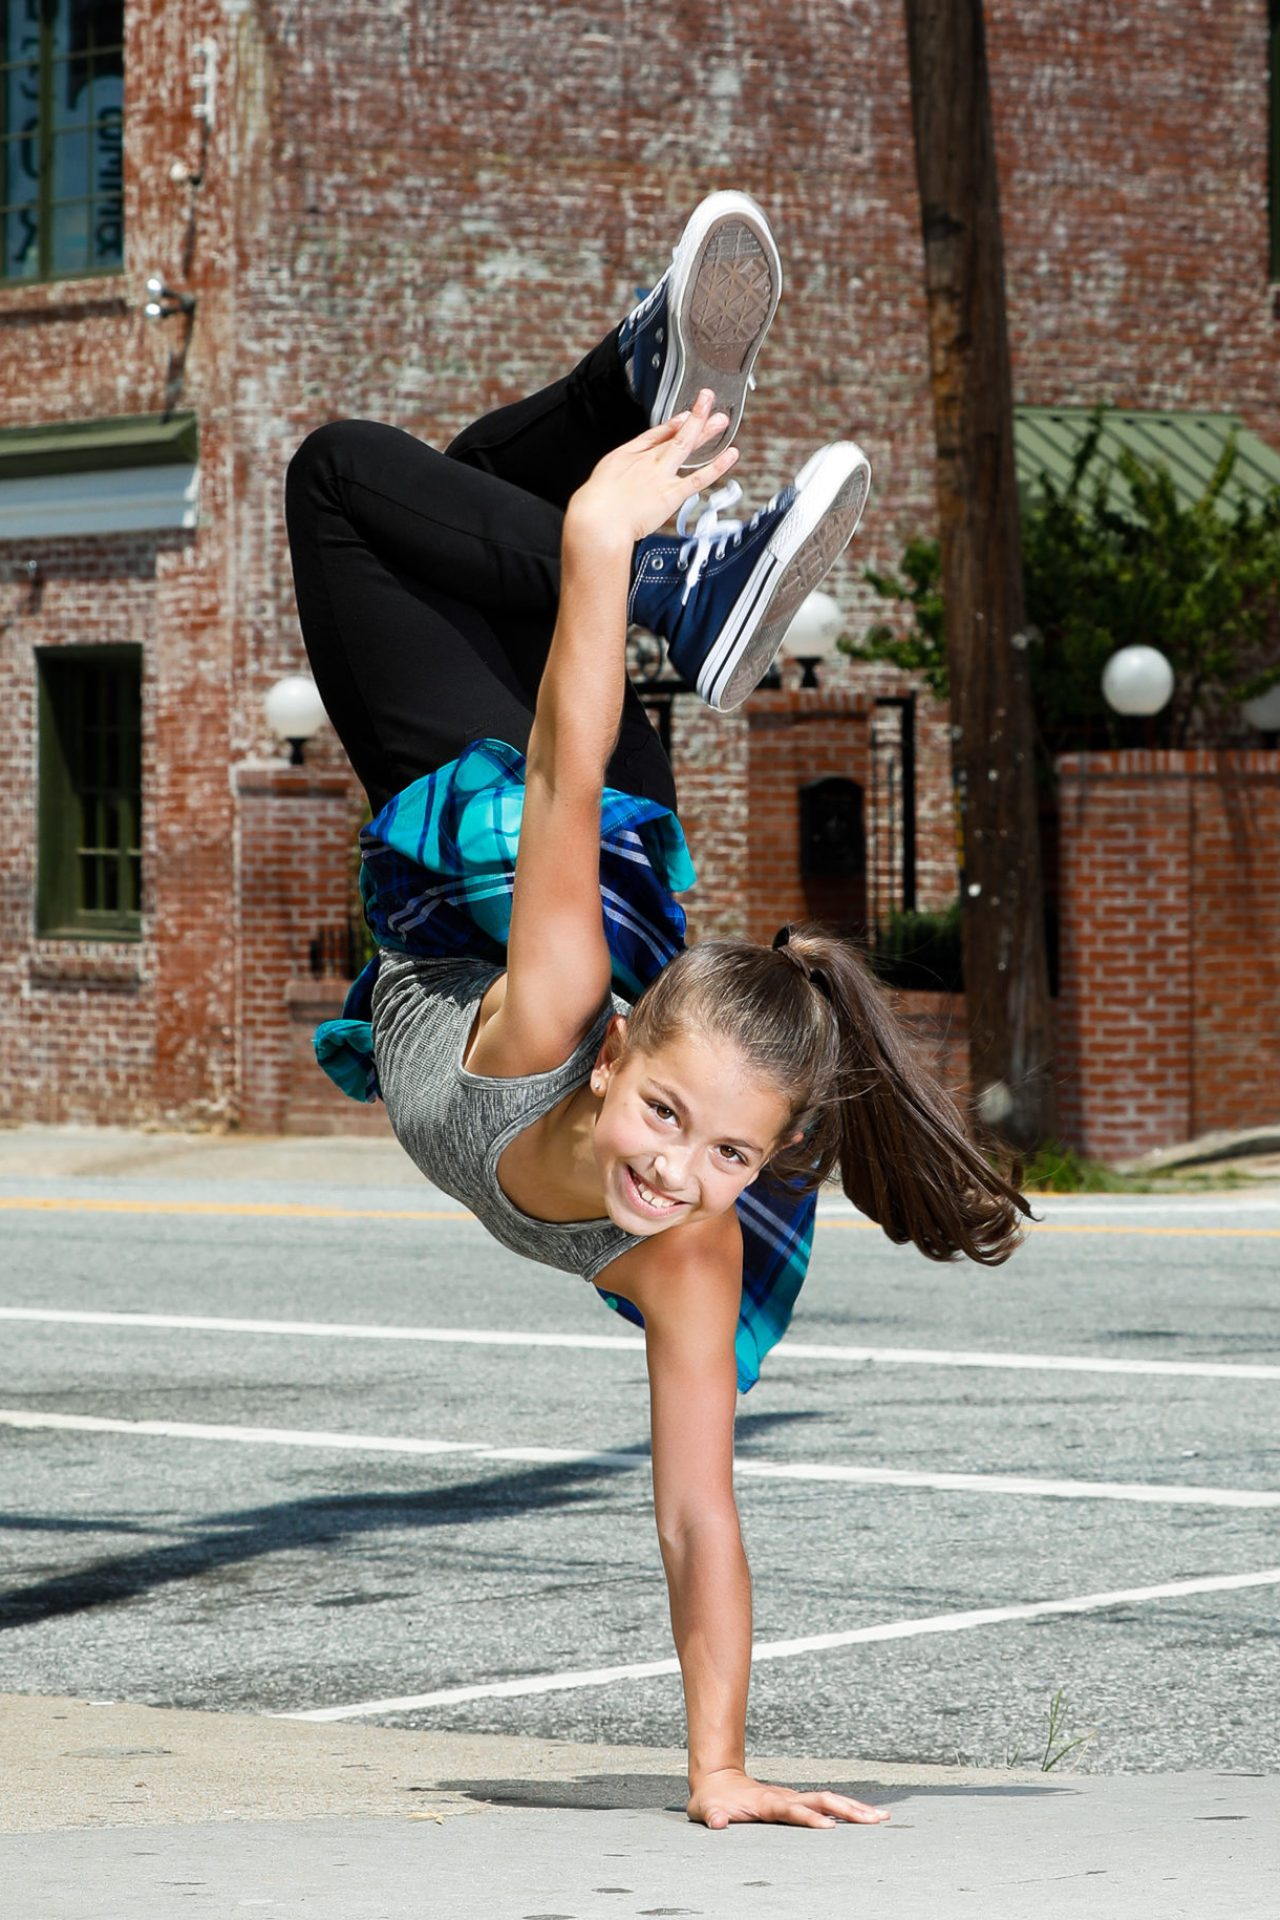 Tween and teen gymnastics pictures taken to celebrate the milestones of you child. Photographed in Atlanta and surrounding suburbs by Starr Petronella and Urban Flair Photography.